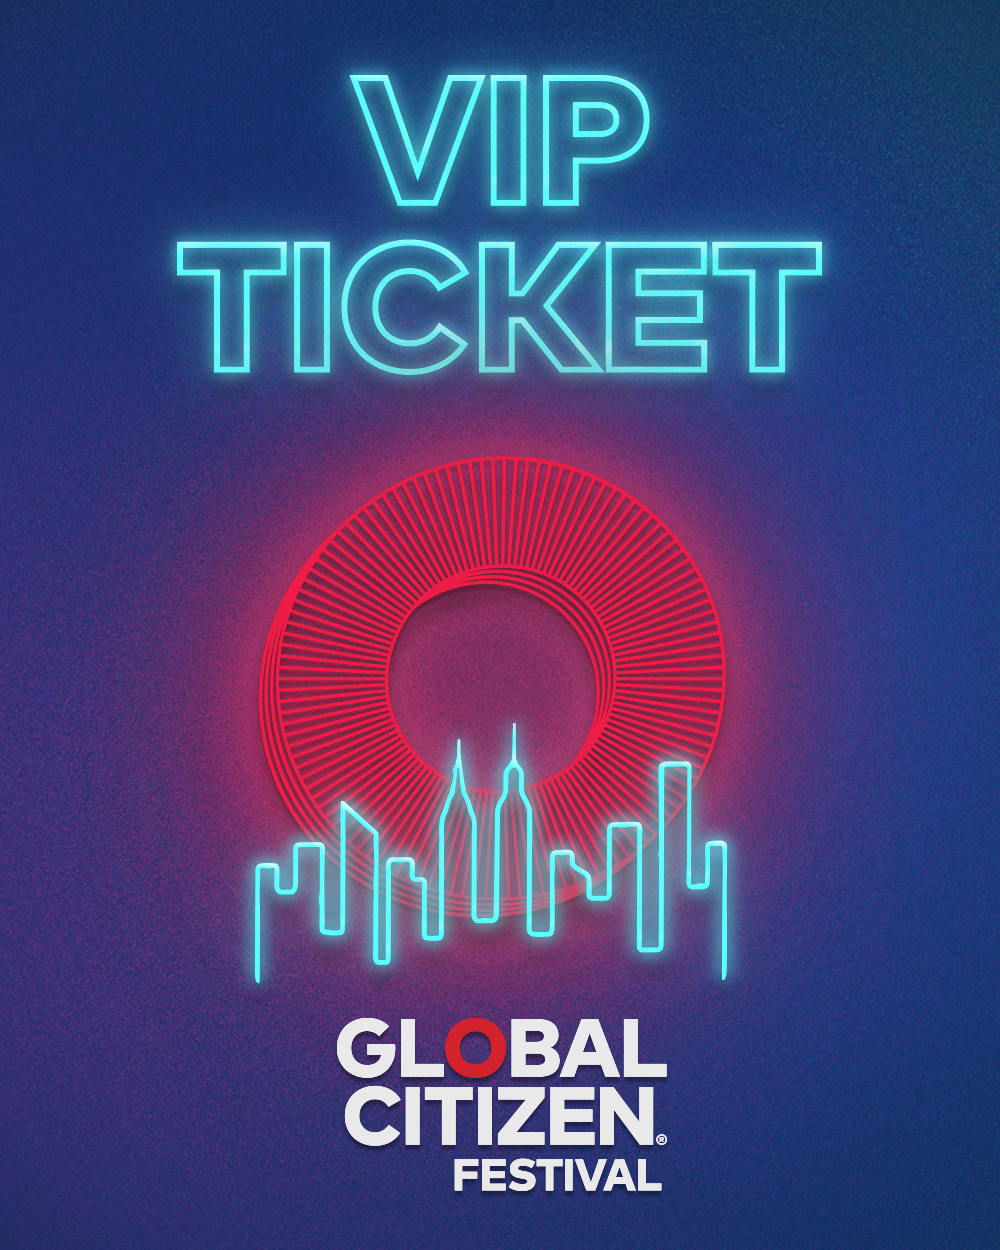 Ultimate VIP Festival Ticket